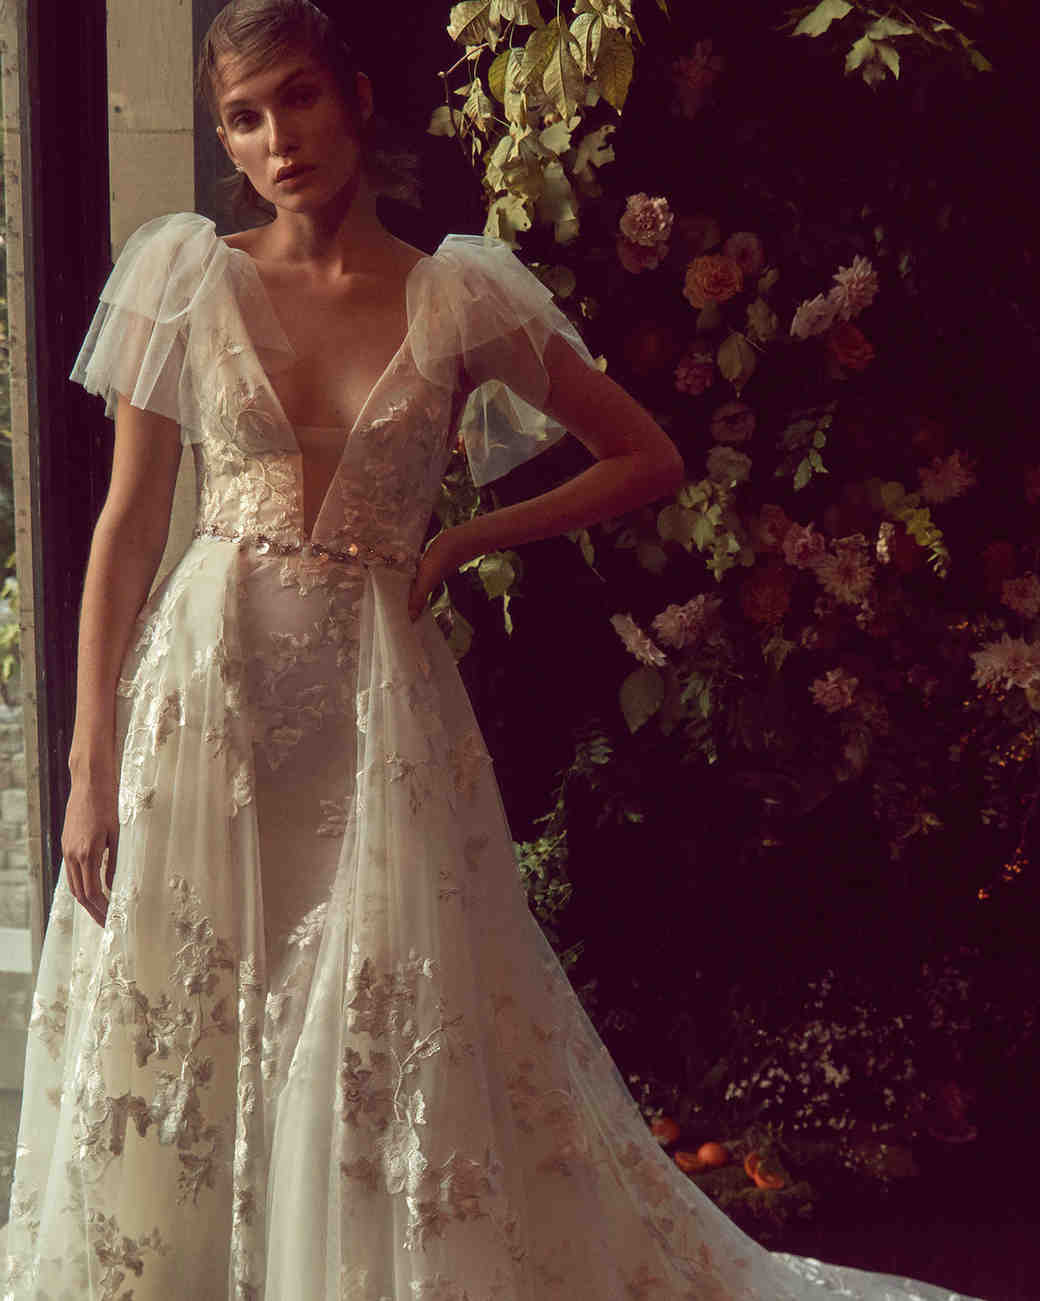 monique lhuillier bliss fall 2019 lace a-line gown with layered tulle sleeves and beaded belt